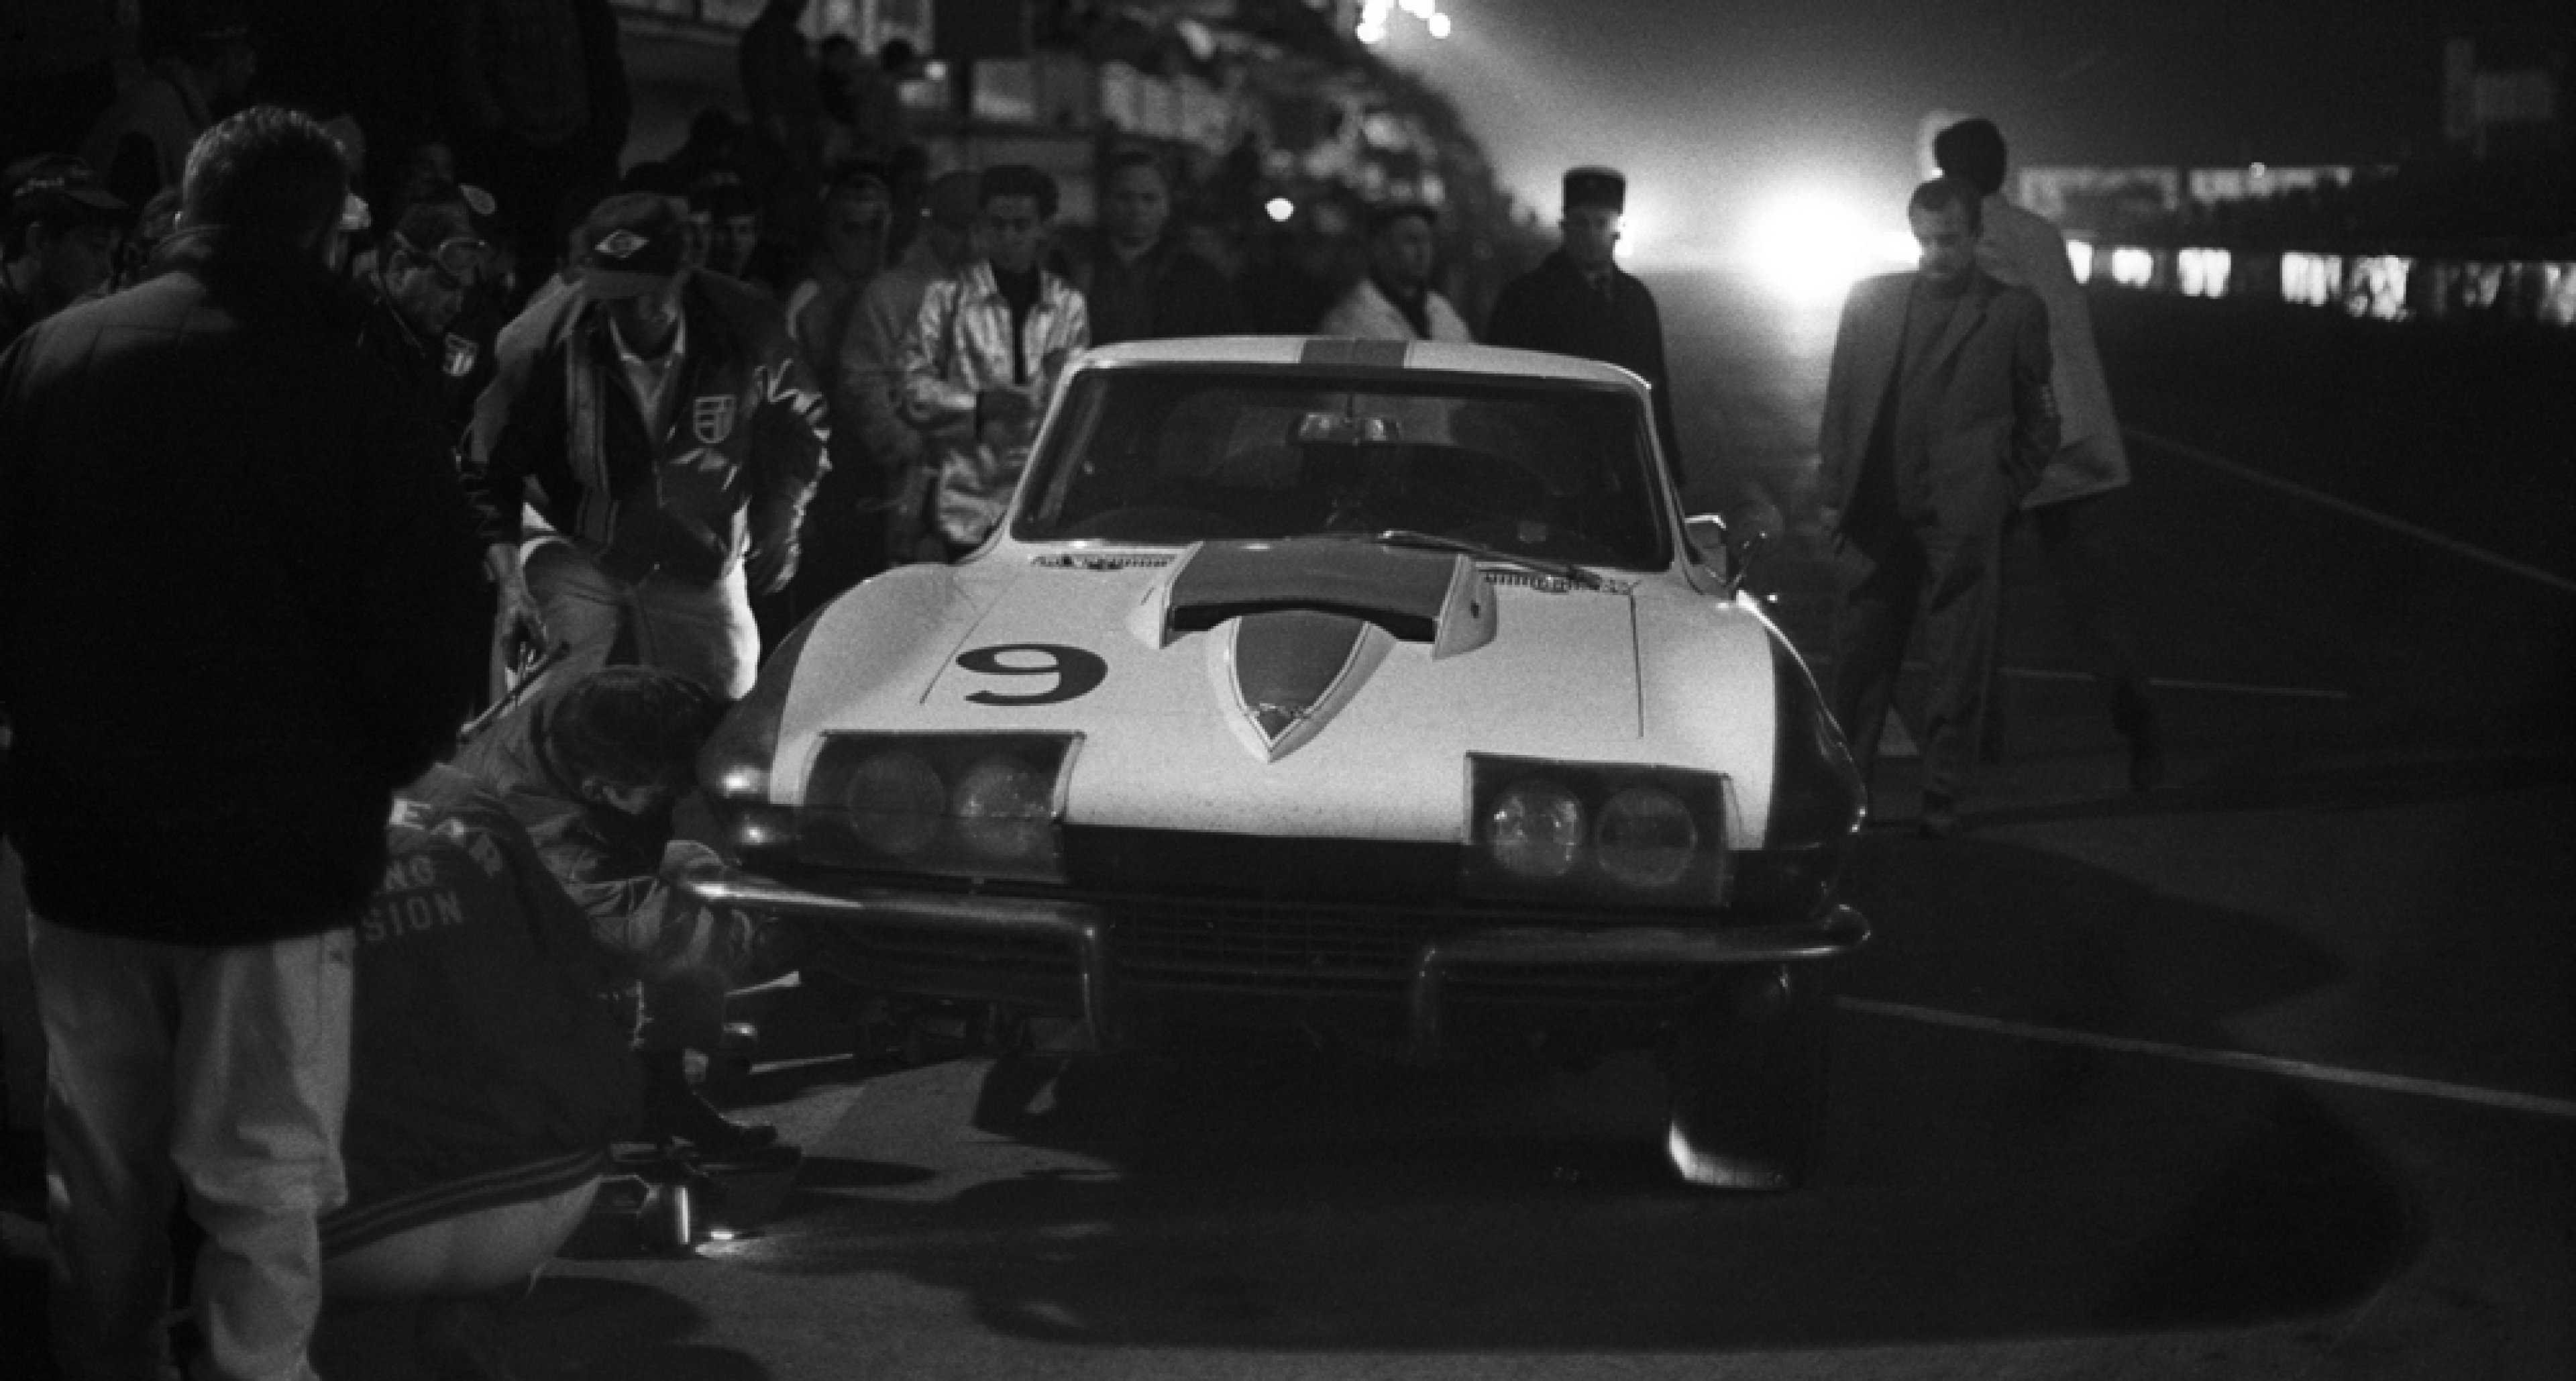 Pitstop at night of Bob Bondurant (USA) and Dick Guldstrand (USA) on Chevrolet Corvette 194377S113787 entered by Dana Chevrolet Inc. , France, Le Mans, 10 June 1967. (Photo by Rainer W. Schlegelmilch/Getty Images).